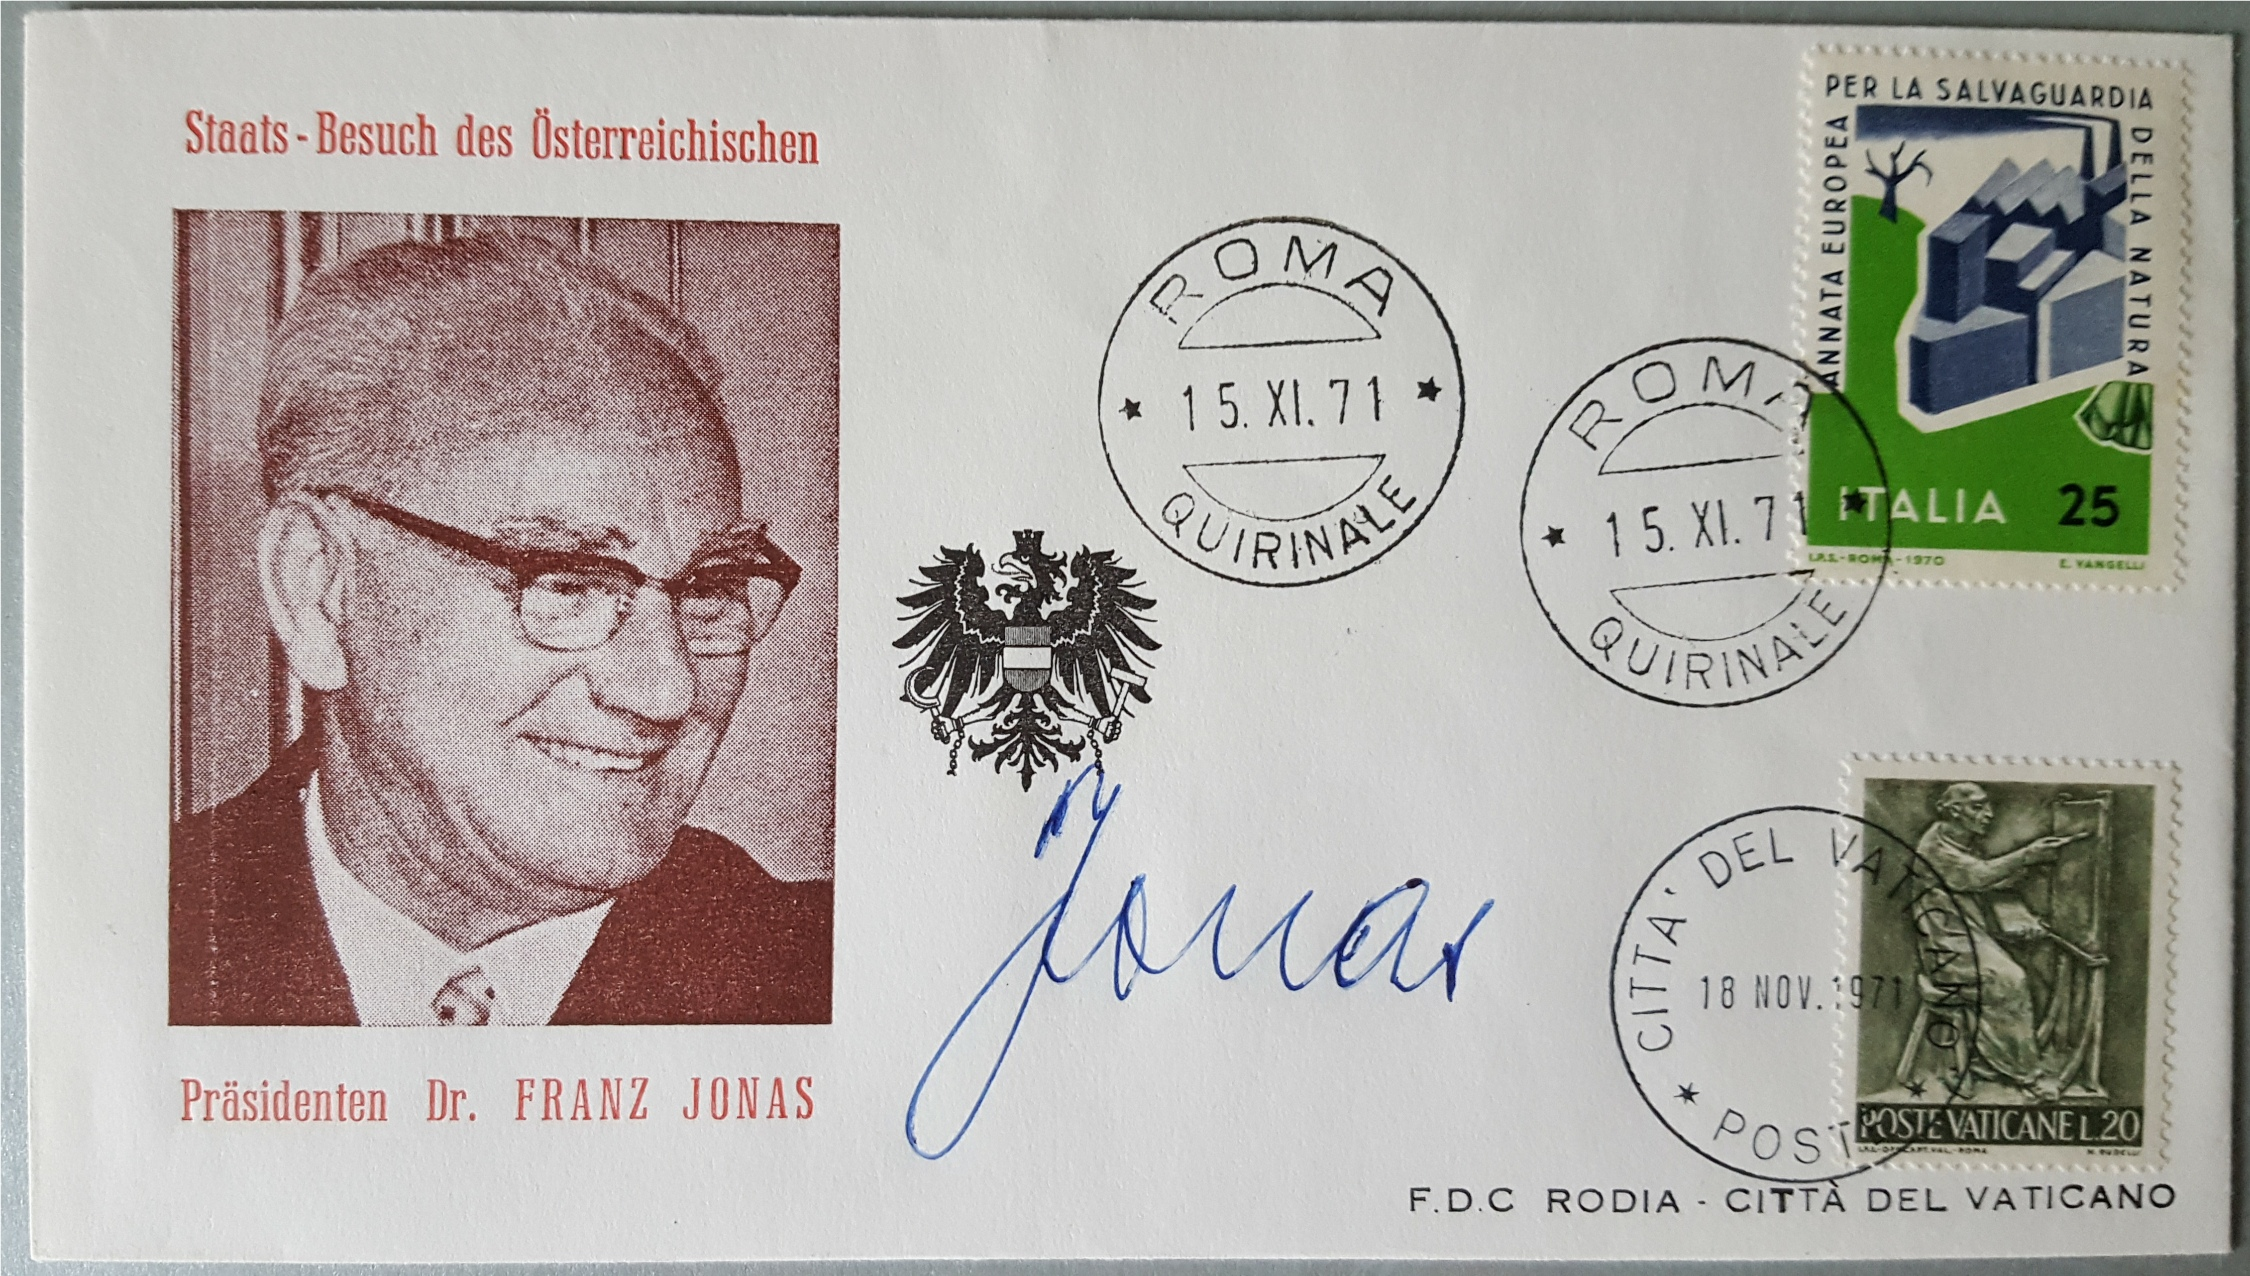 Lot 60 - Vintage Autograph Franz Jonas President of Austria on First Day Cover Dated 1971 NO RESERVE